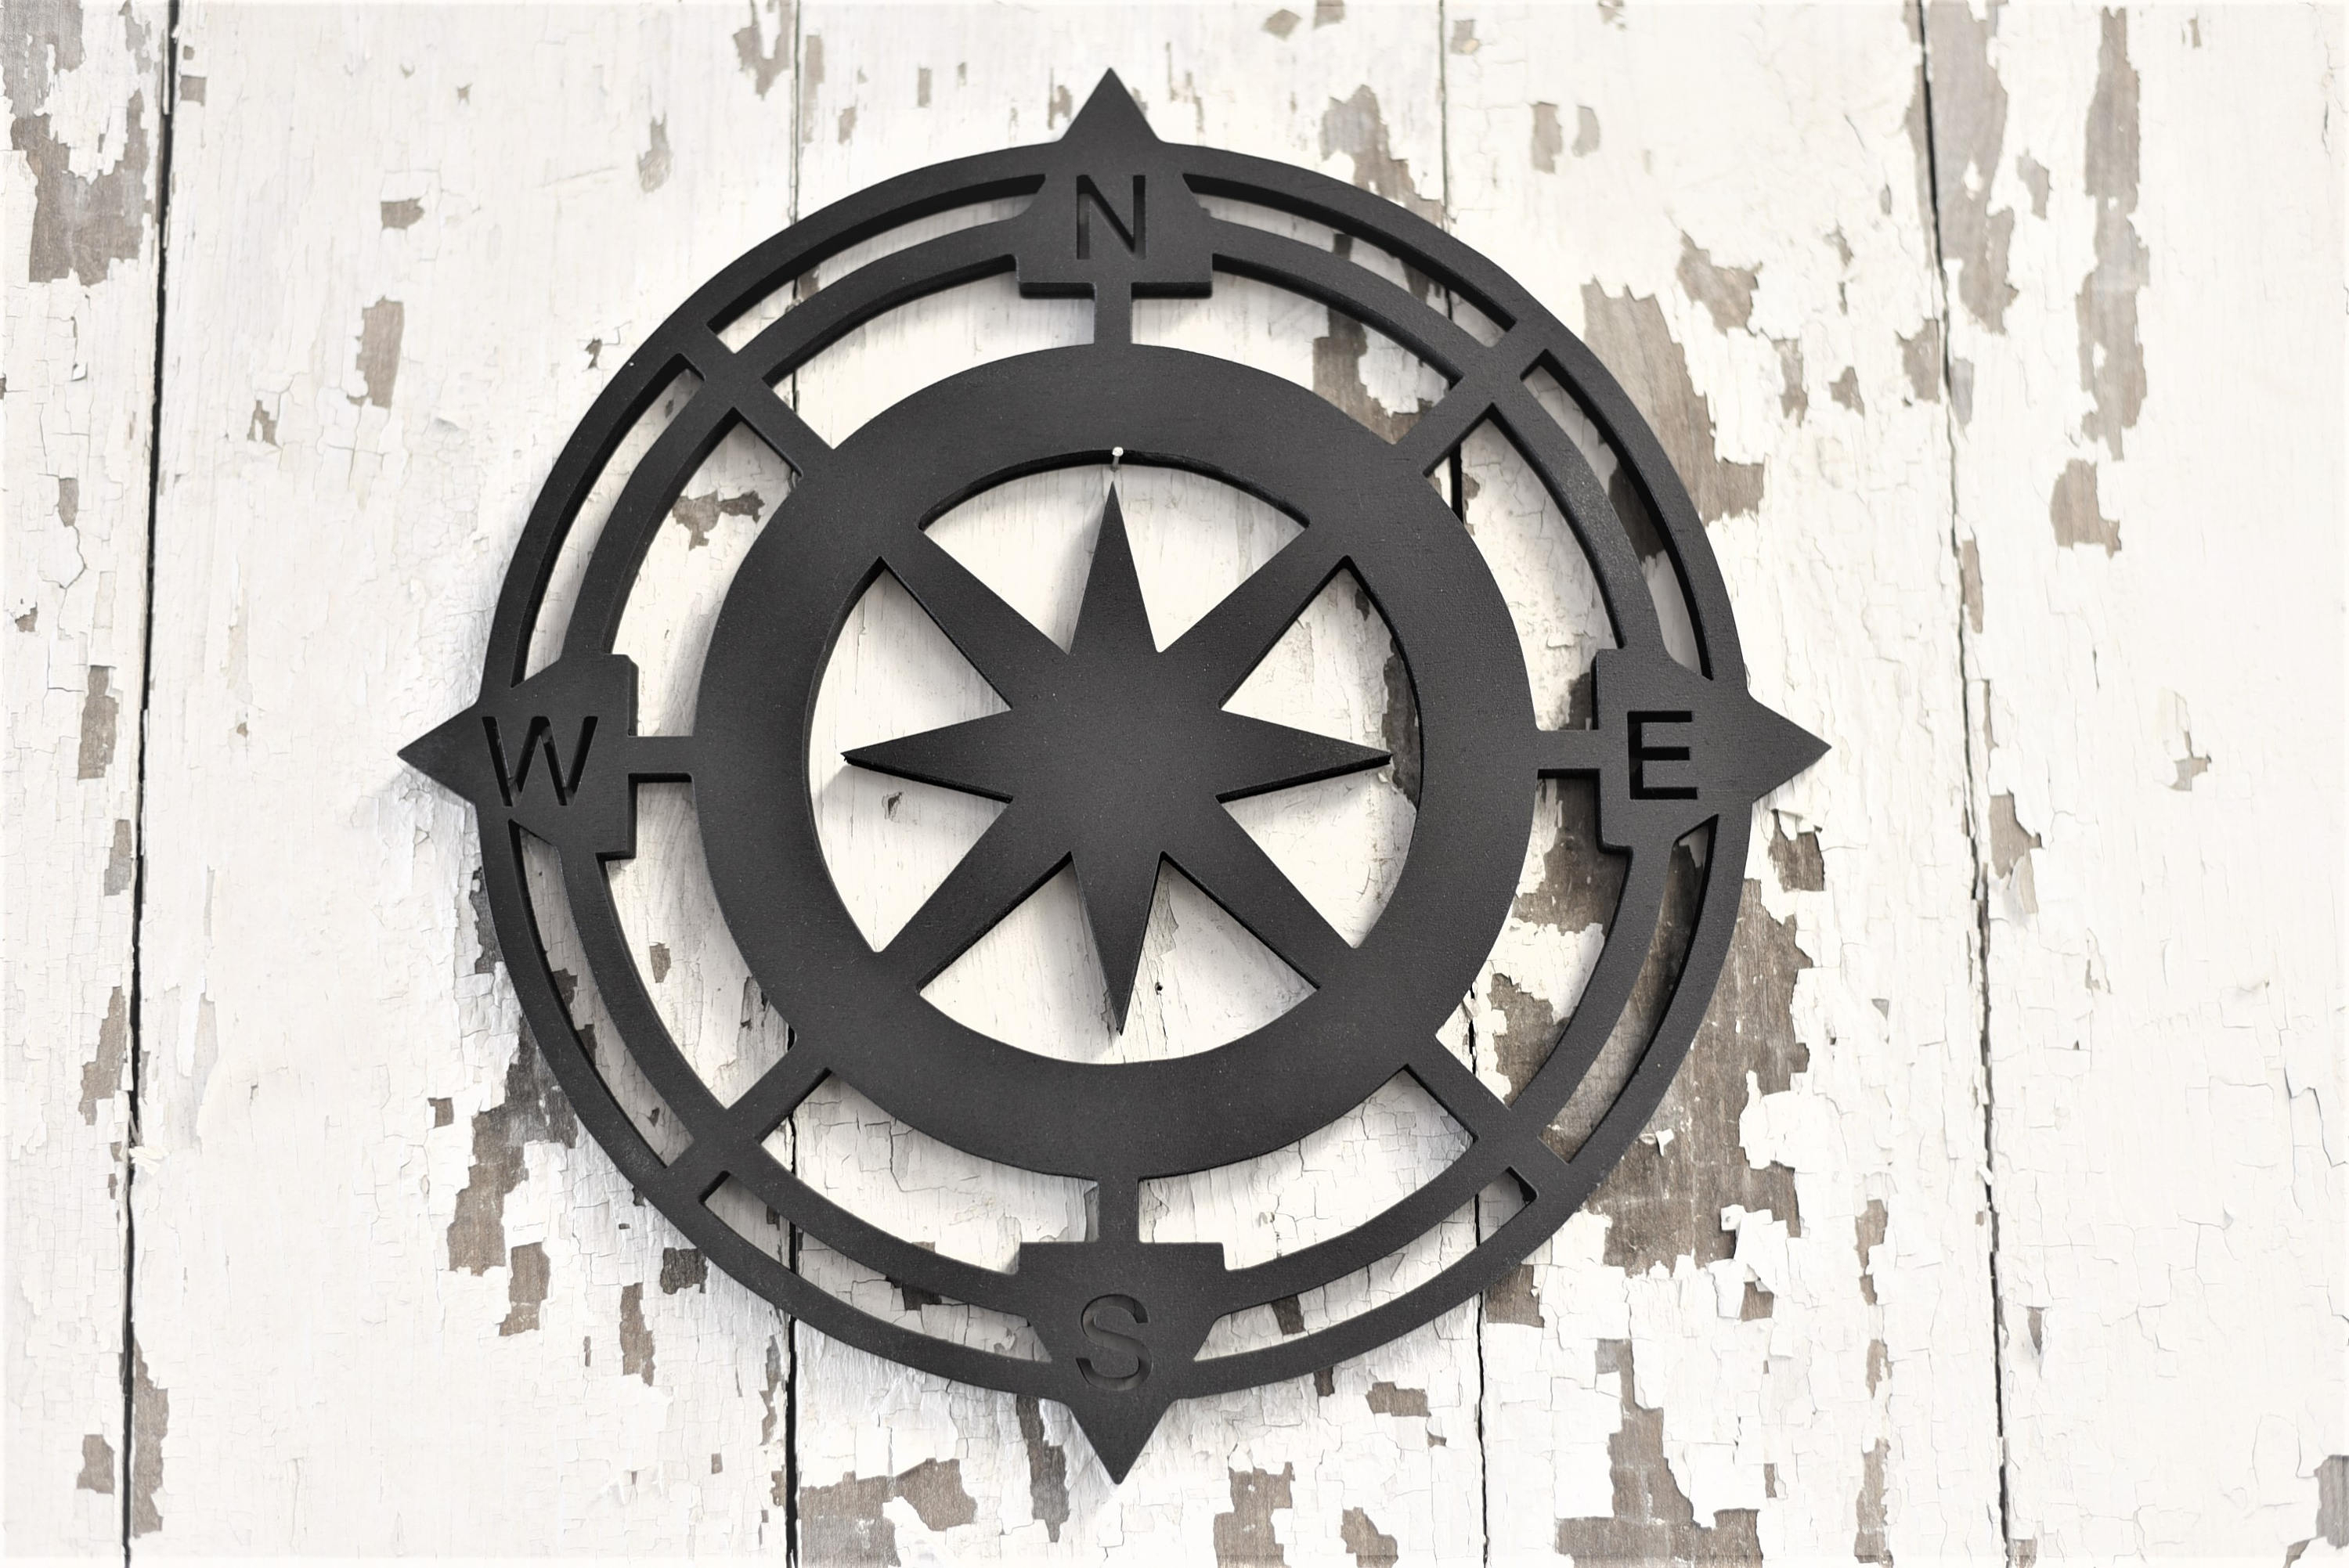 Compass Wood Stained Round Wood Cut Wall Art Sign Decor for Round Compass Wall Decor (Image 10 of 30)